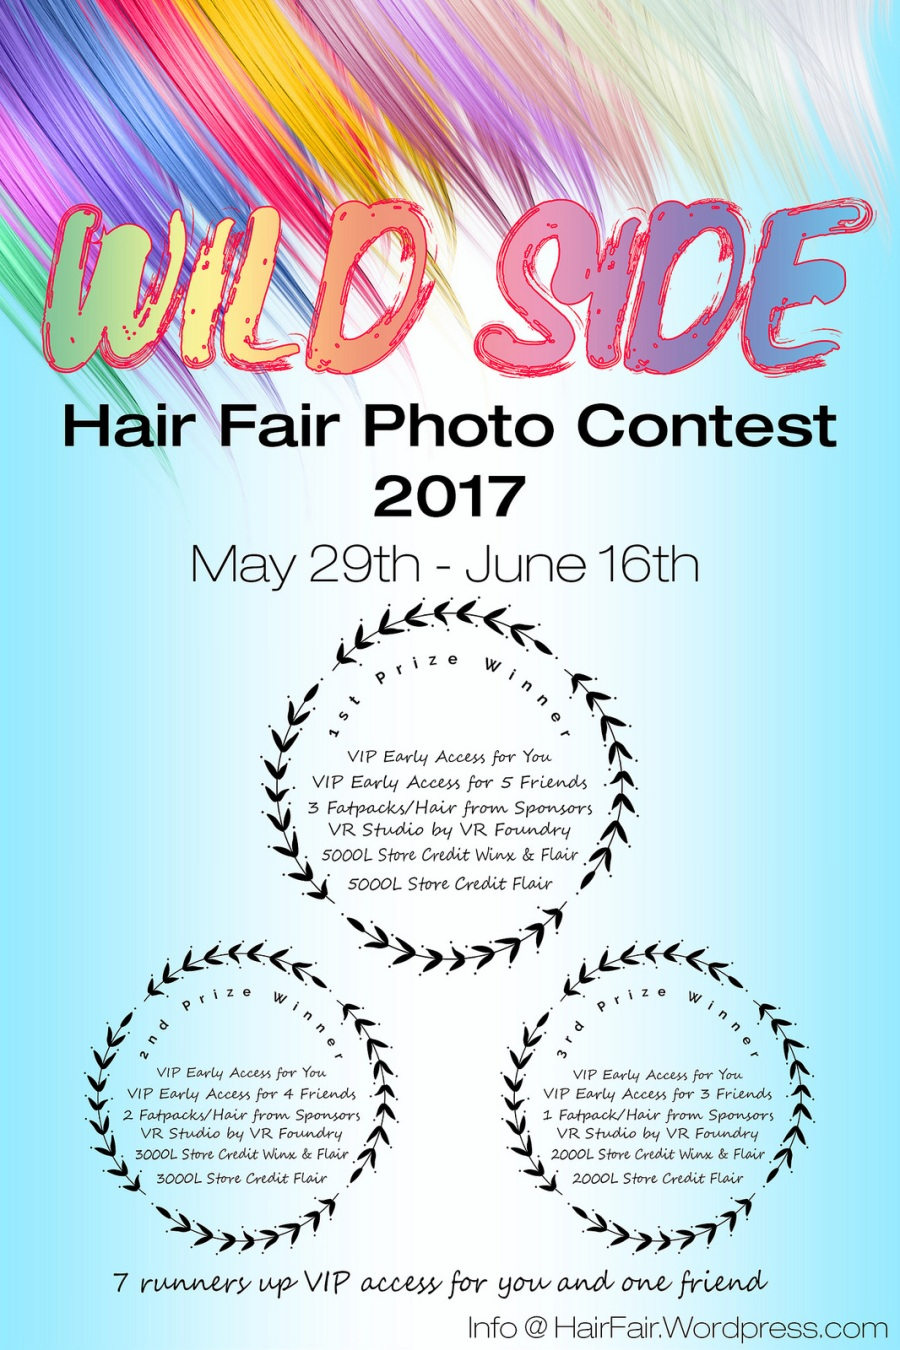 Hair Fair Photo Contest 2017